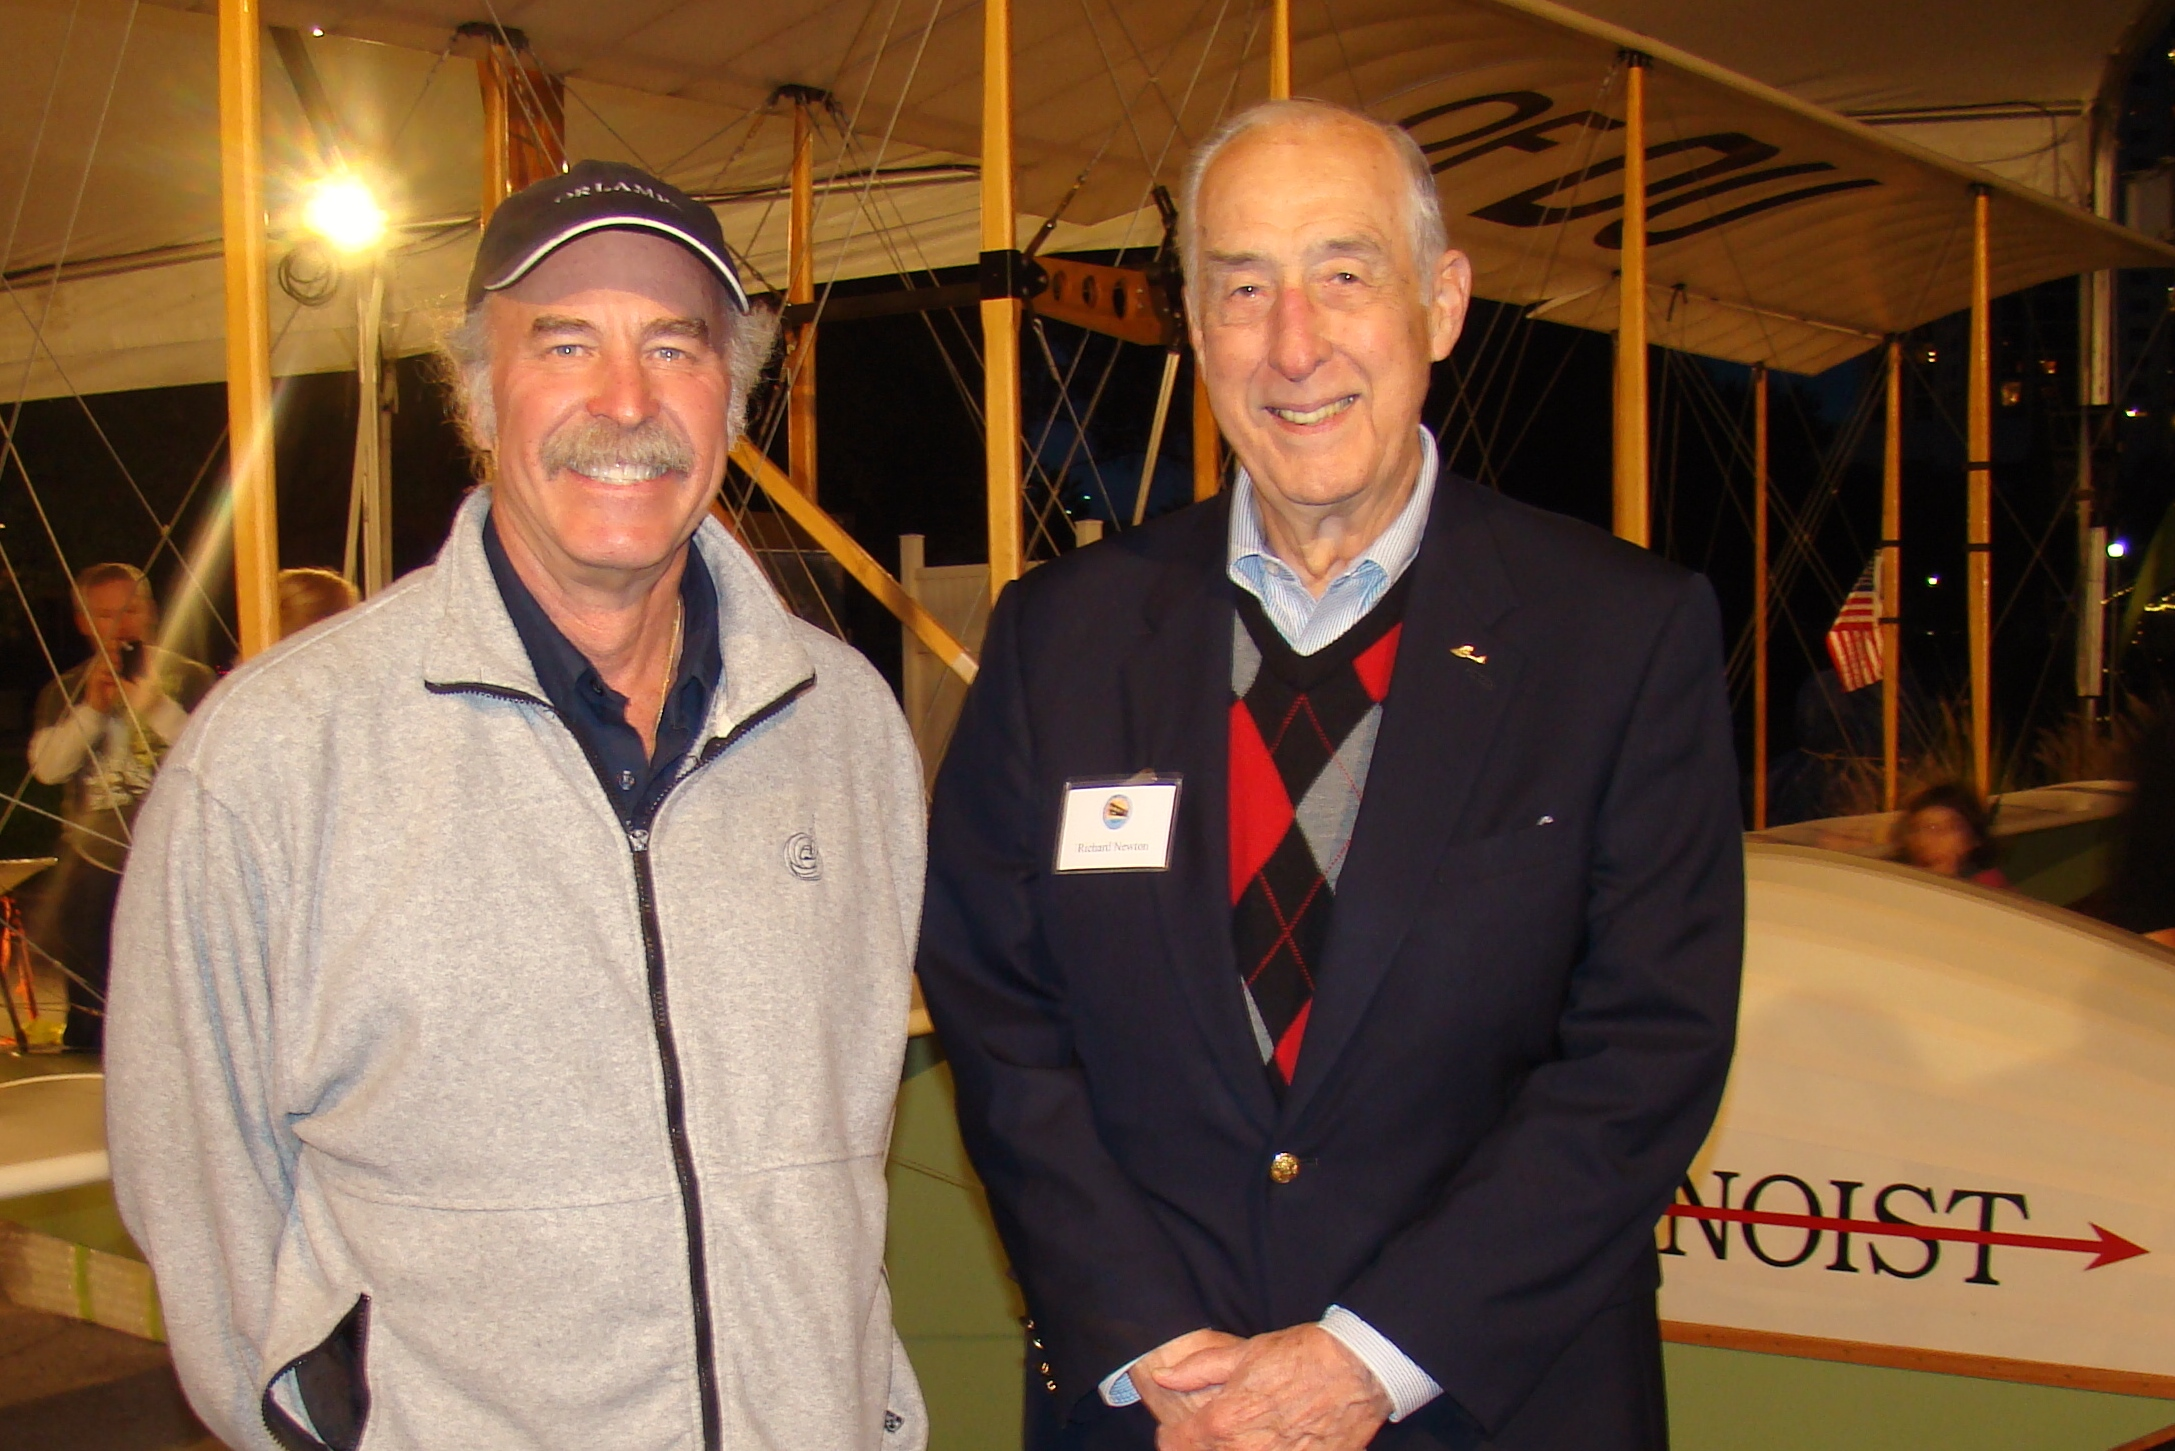 Kermit Weeks & Dick Newton - 1, 31 Dec '13.JPG